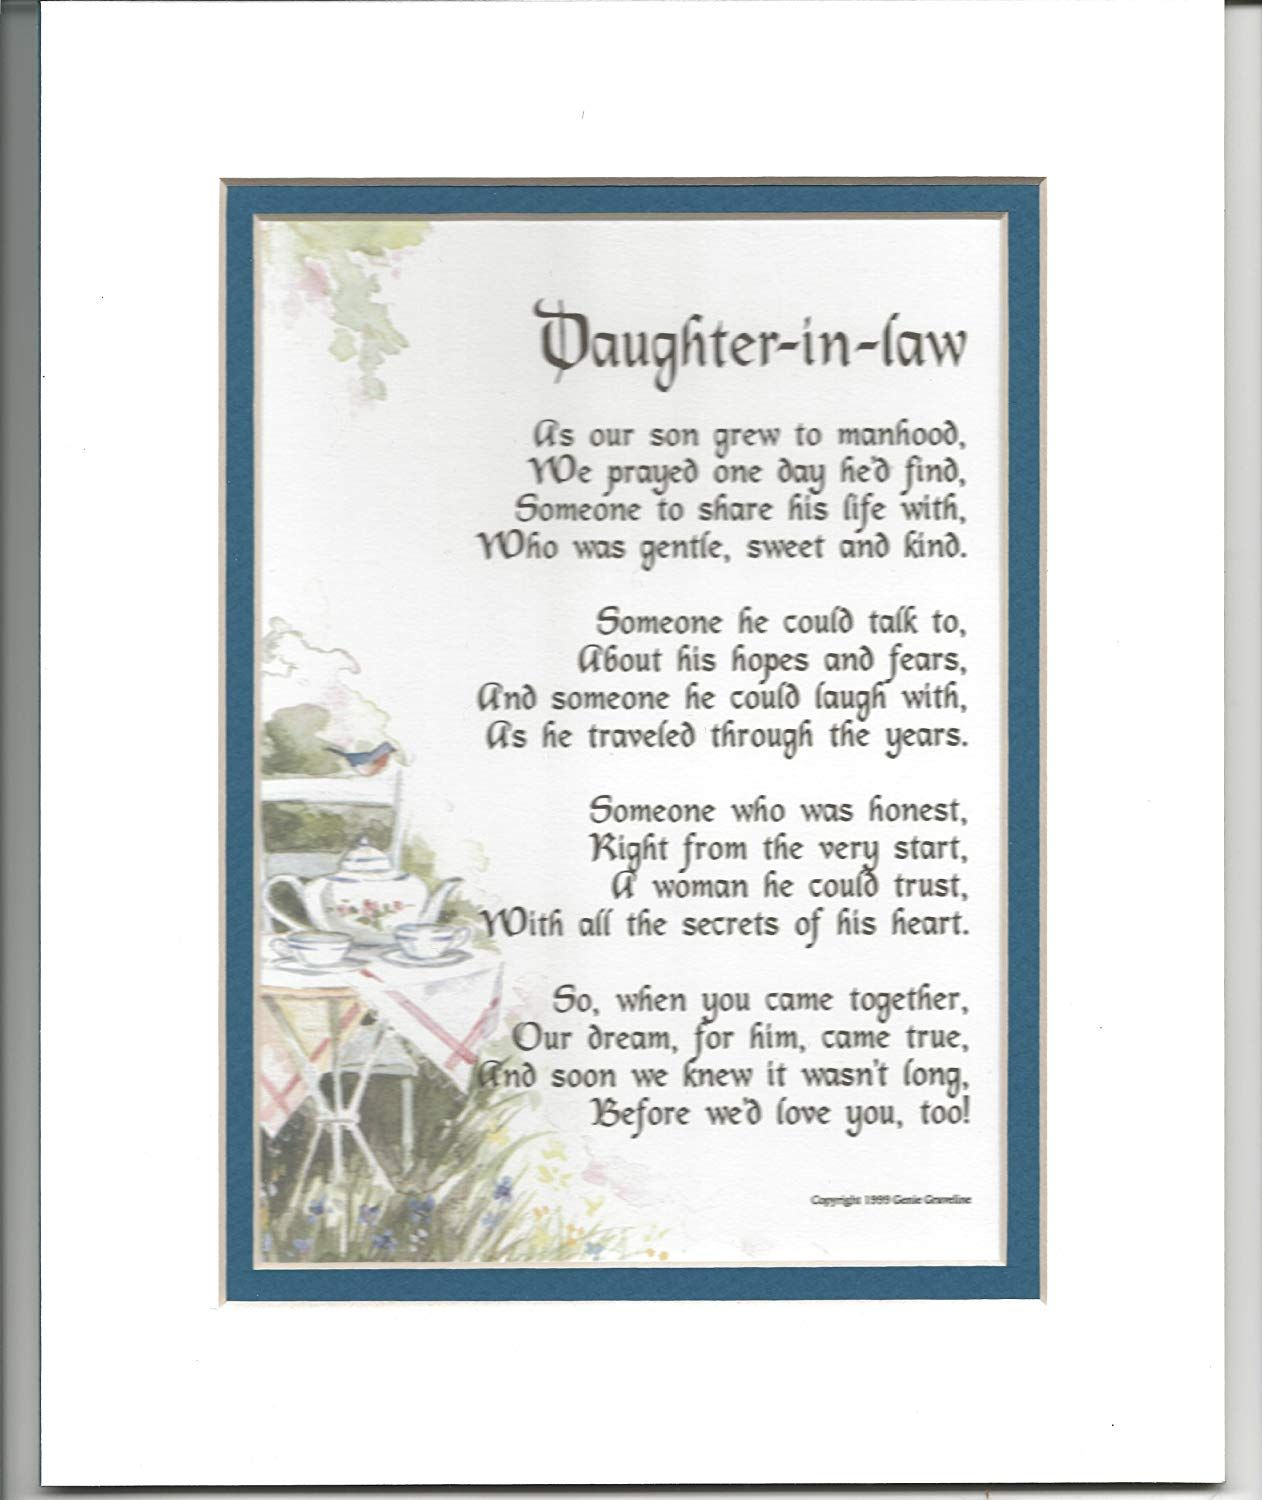 Bridal shower gift poem daughter in law gifts daughter